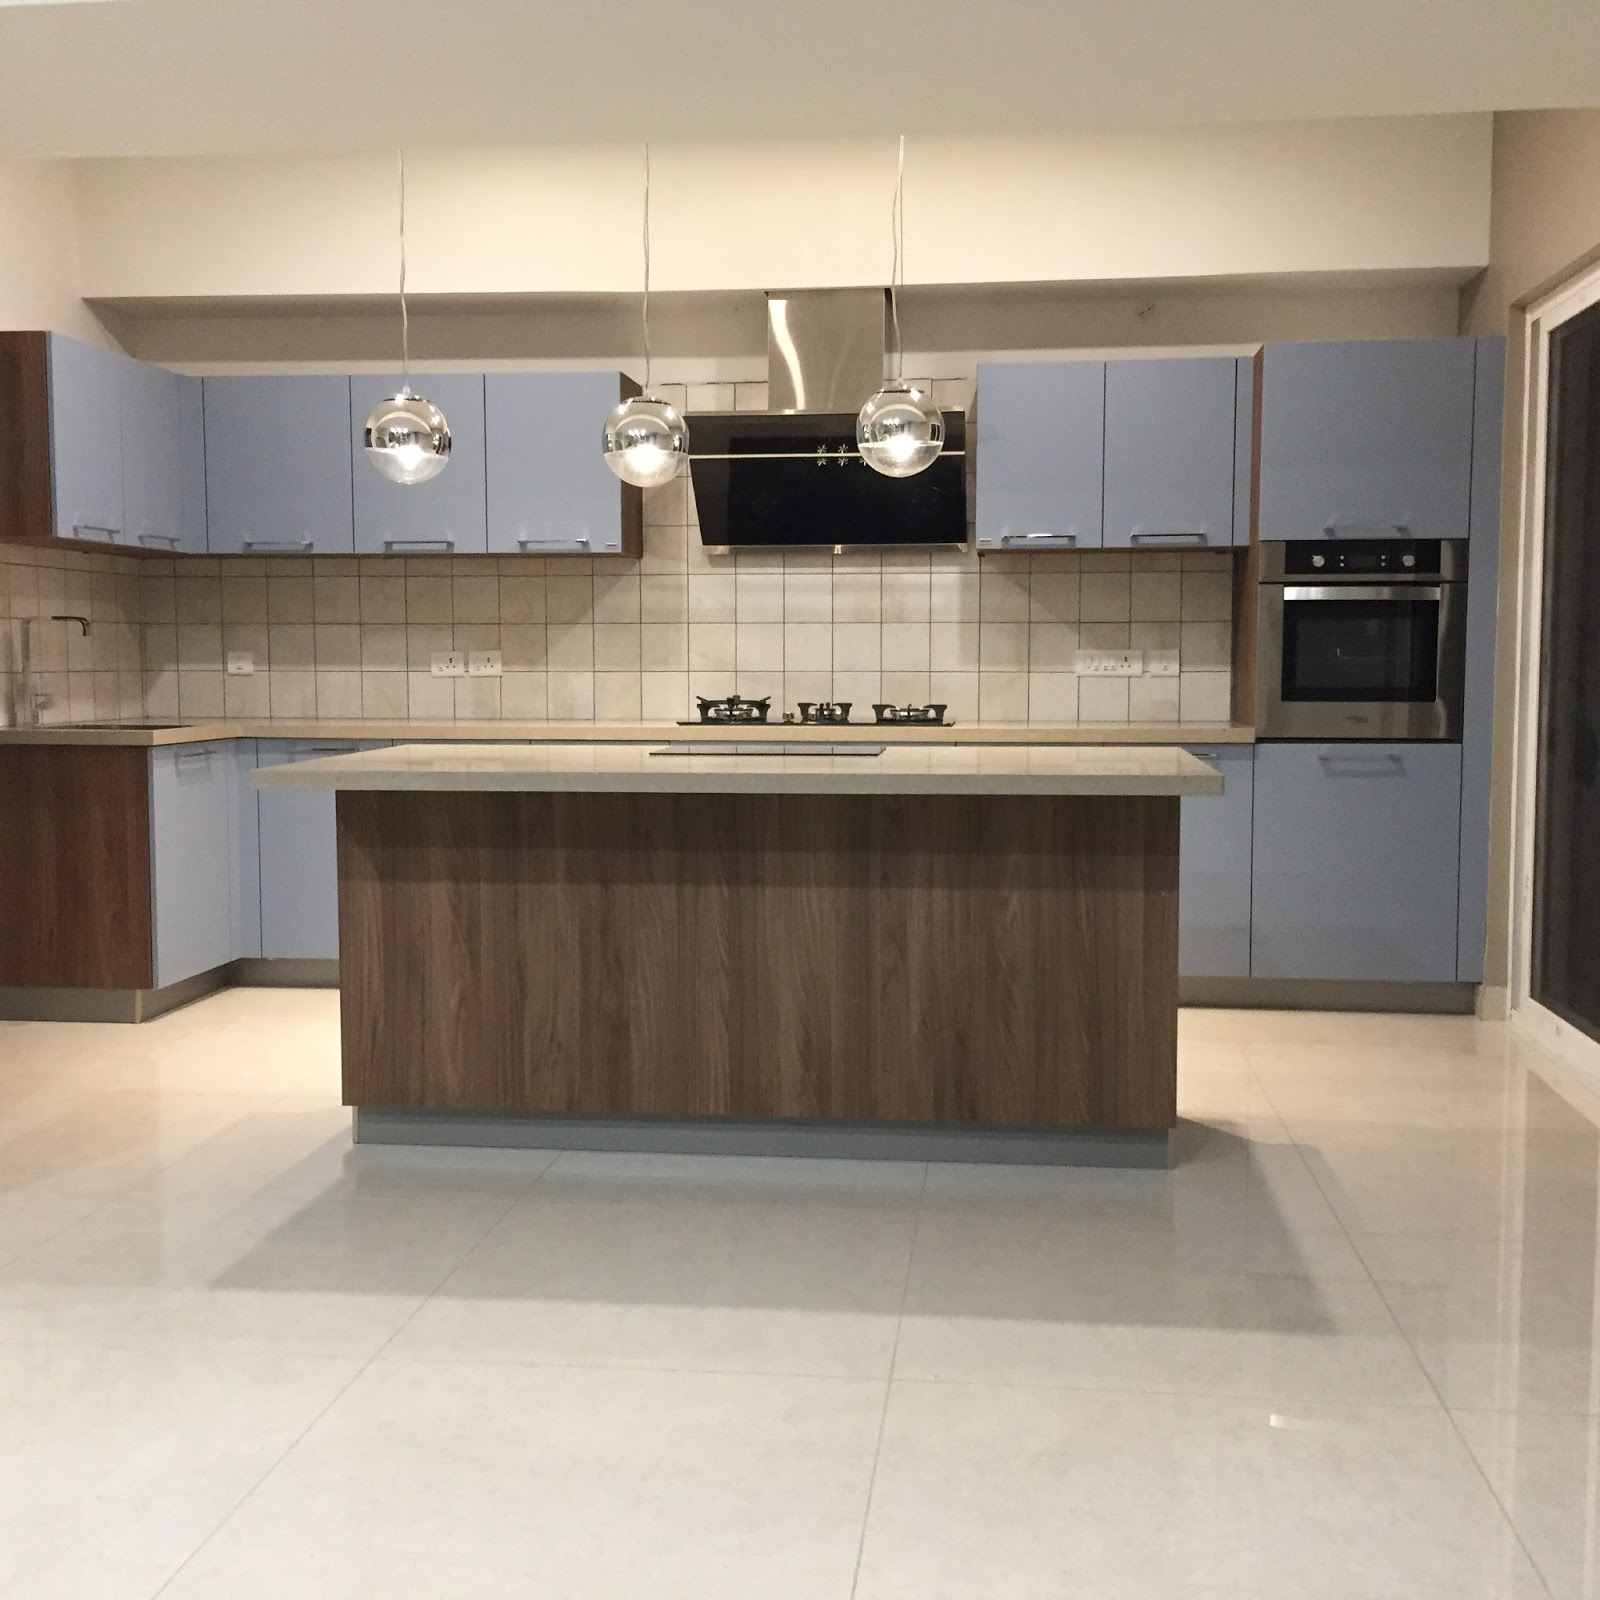 Modular Kitchen: Modular Kitchens In Bangalore: How We Ended Up Choosing